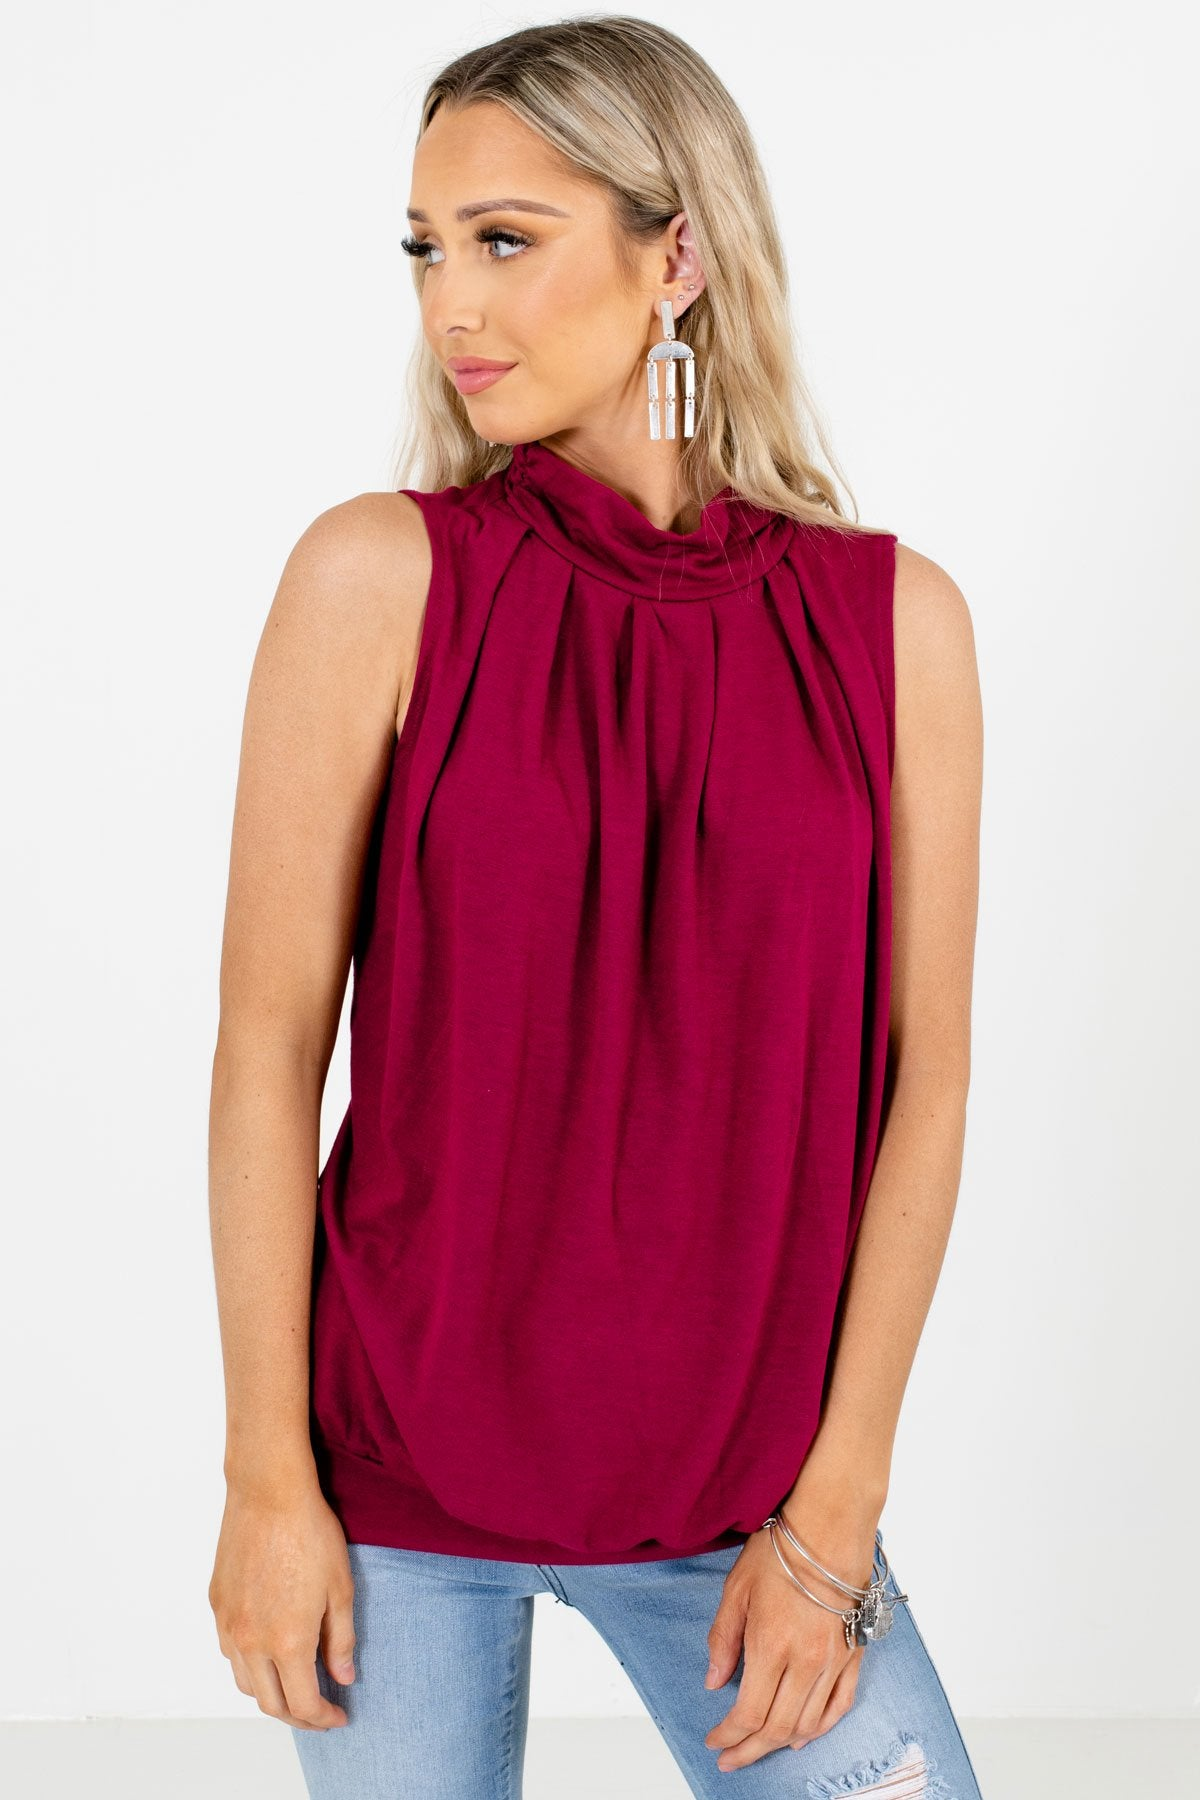 Wine Red Mock Neckline Boutique Tank Tops for Women